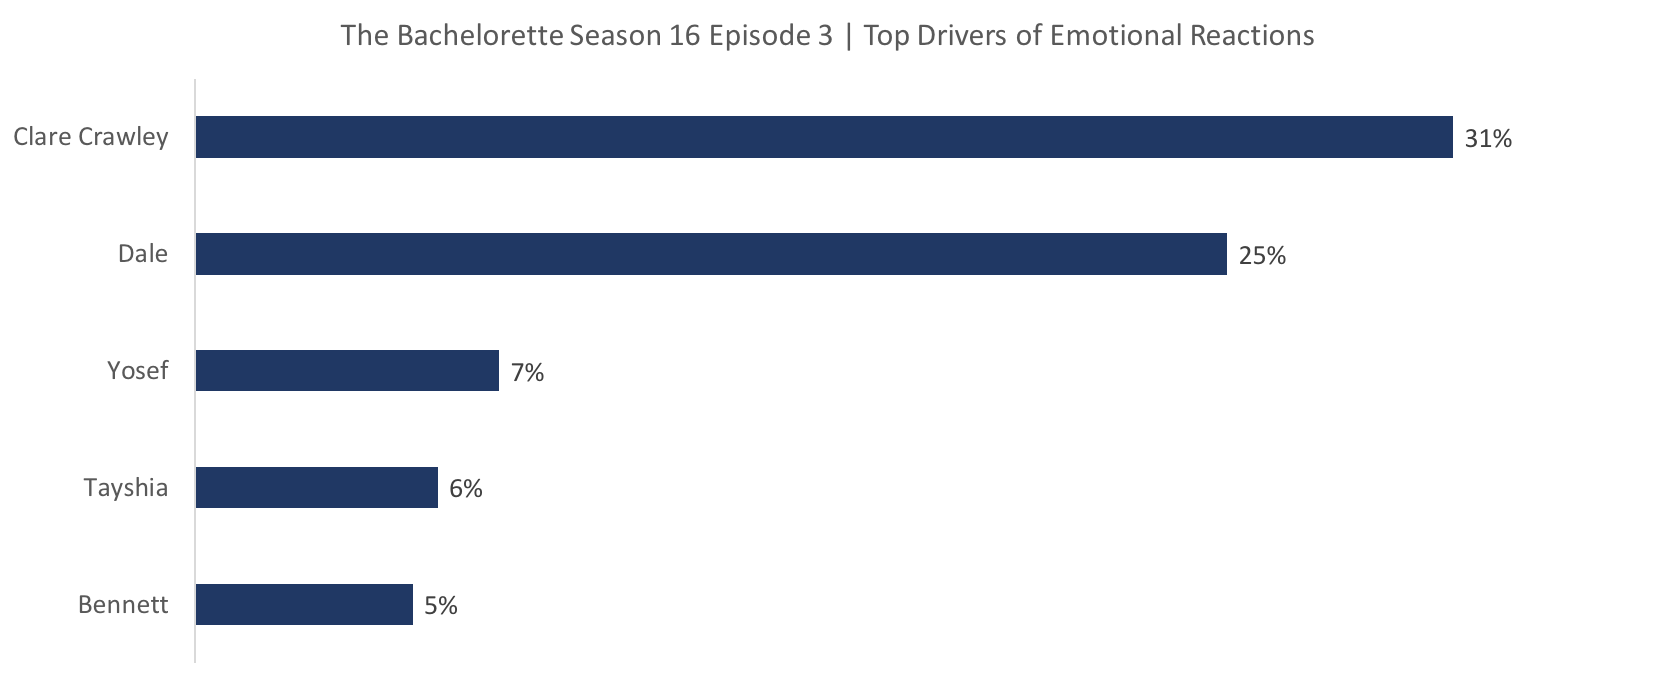 Source: Canvs, The Bachelorette Season 16 Episode 3 Airing Window + / - 3 Hours